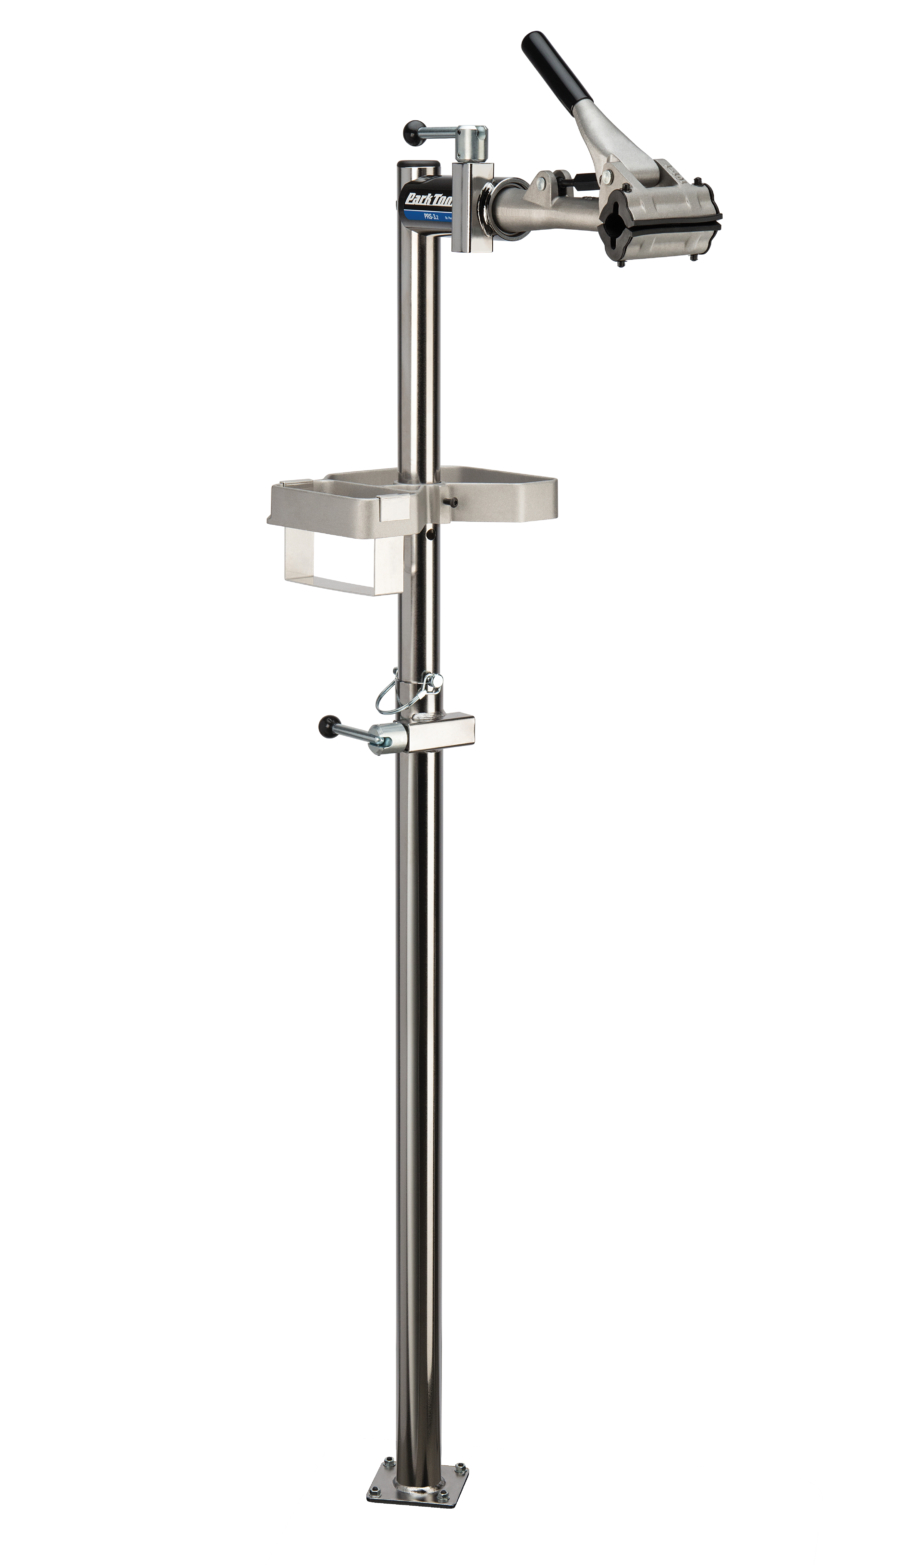 The Park Tool PRS-3.2-1, Deluxe Single Arm Repair Stand without base, enlarged